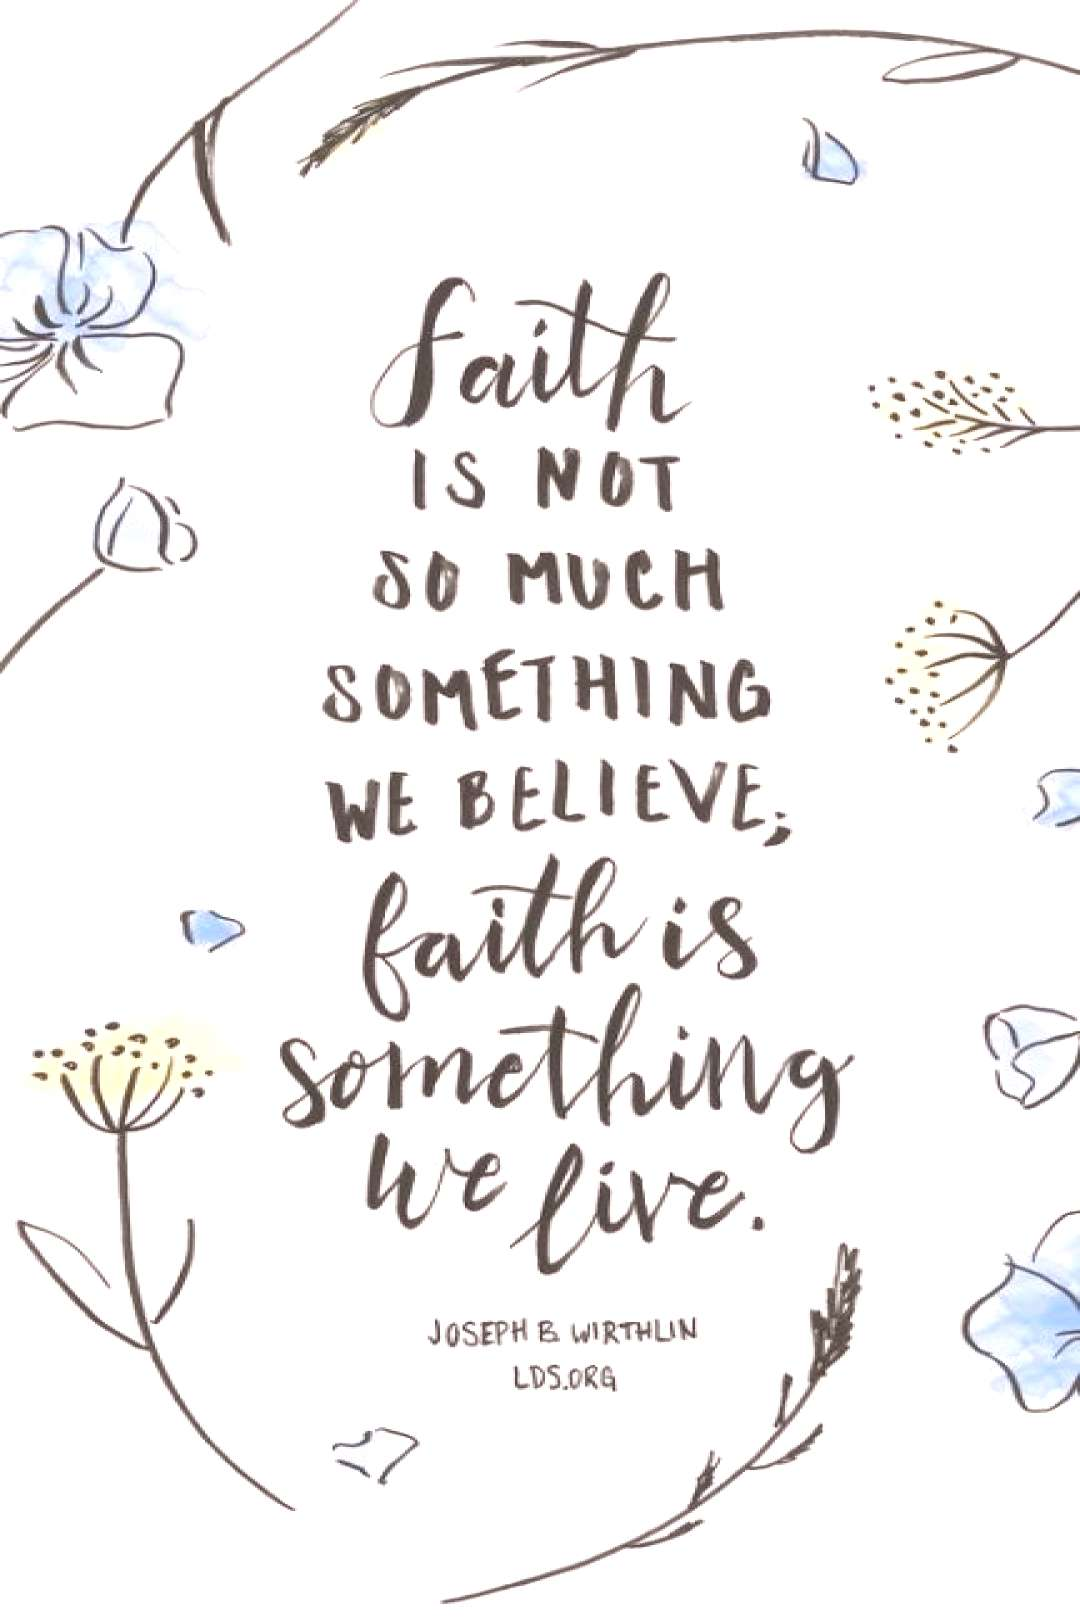 36 Trendy Ideas For Quotes Inspirational Life Faith General Conference 36 Trendy Ideas For Quotes I